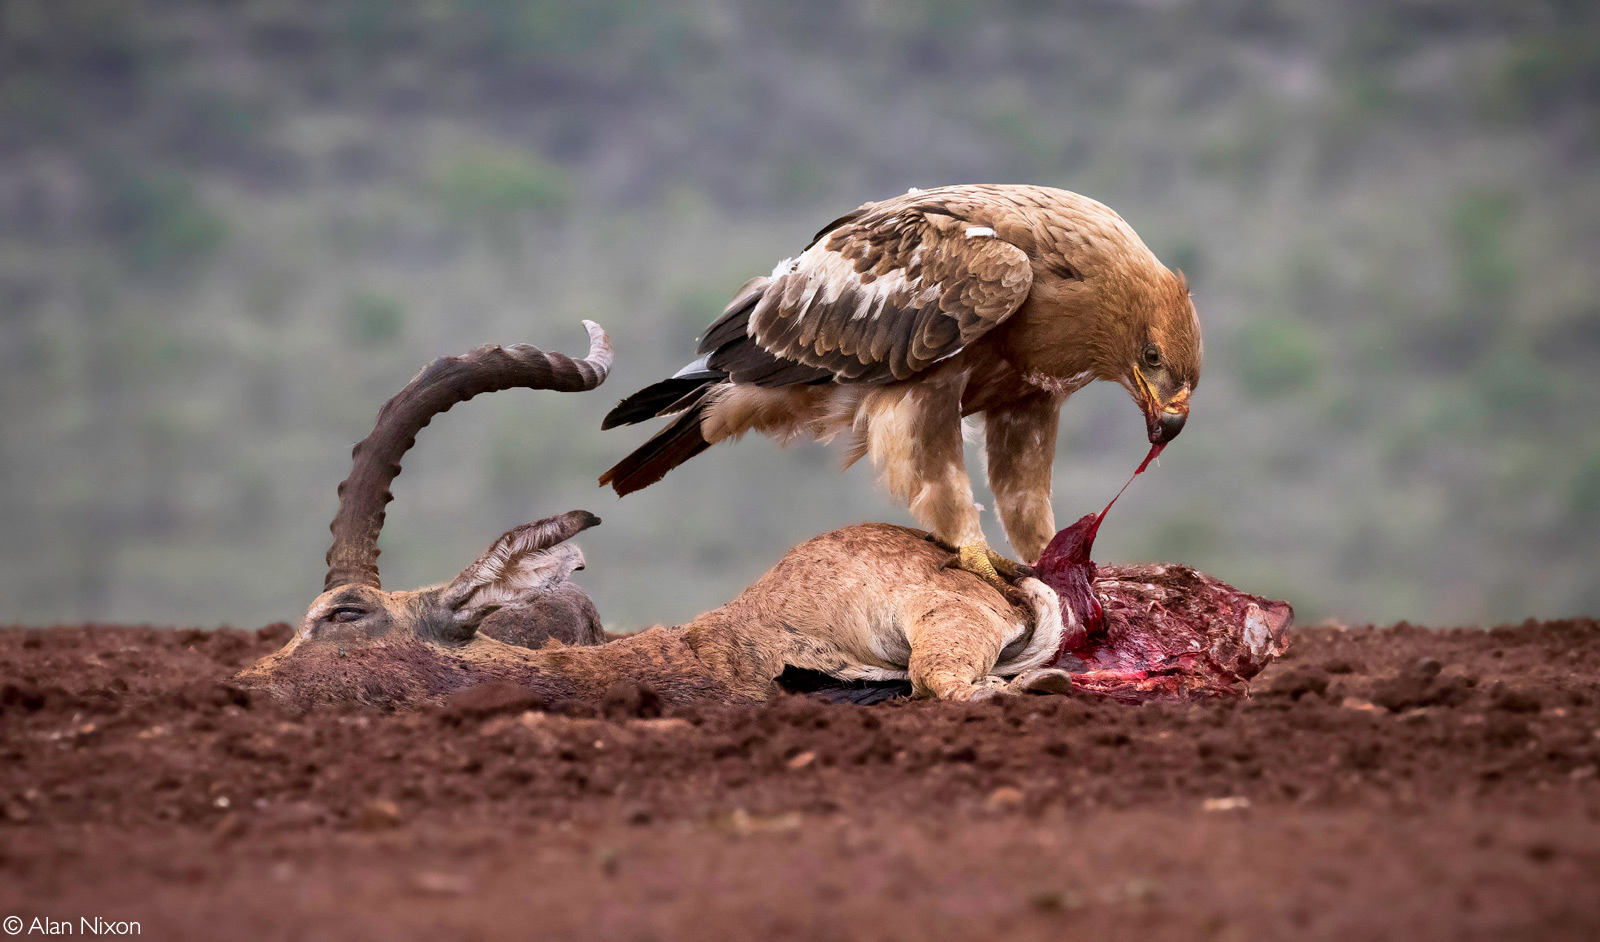 A tawny eagle having his share of a carcass. Zimanga Private Game Reserve, South Africa © Alan Nixon